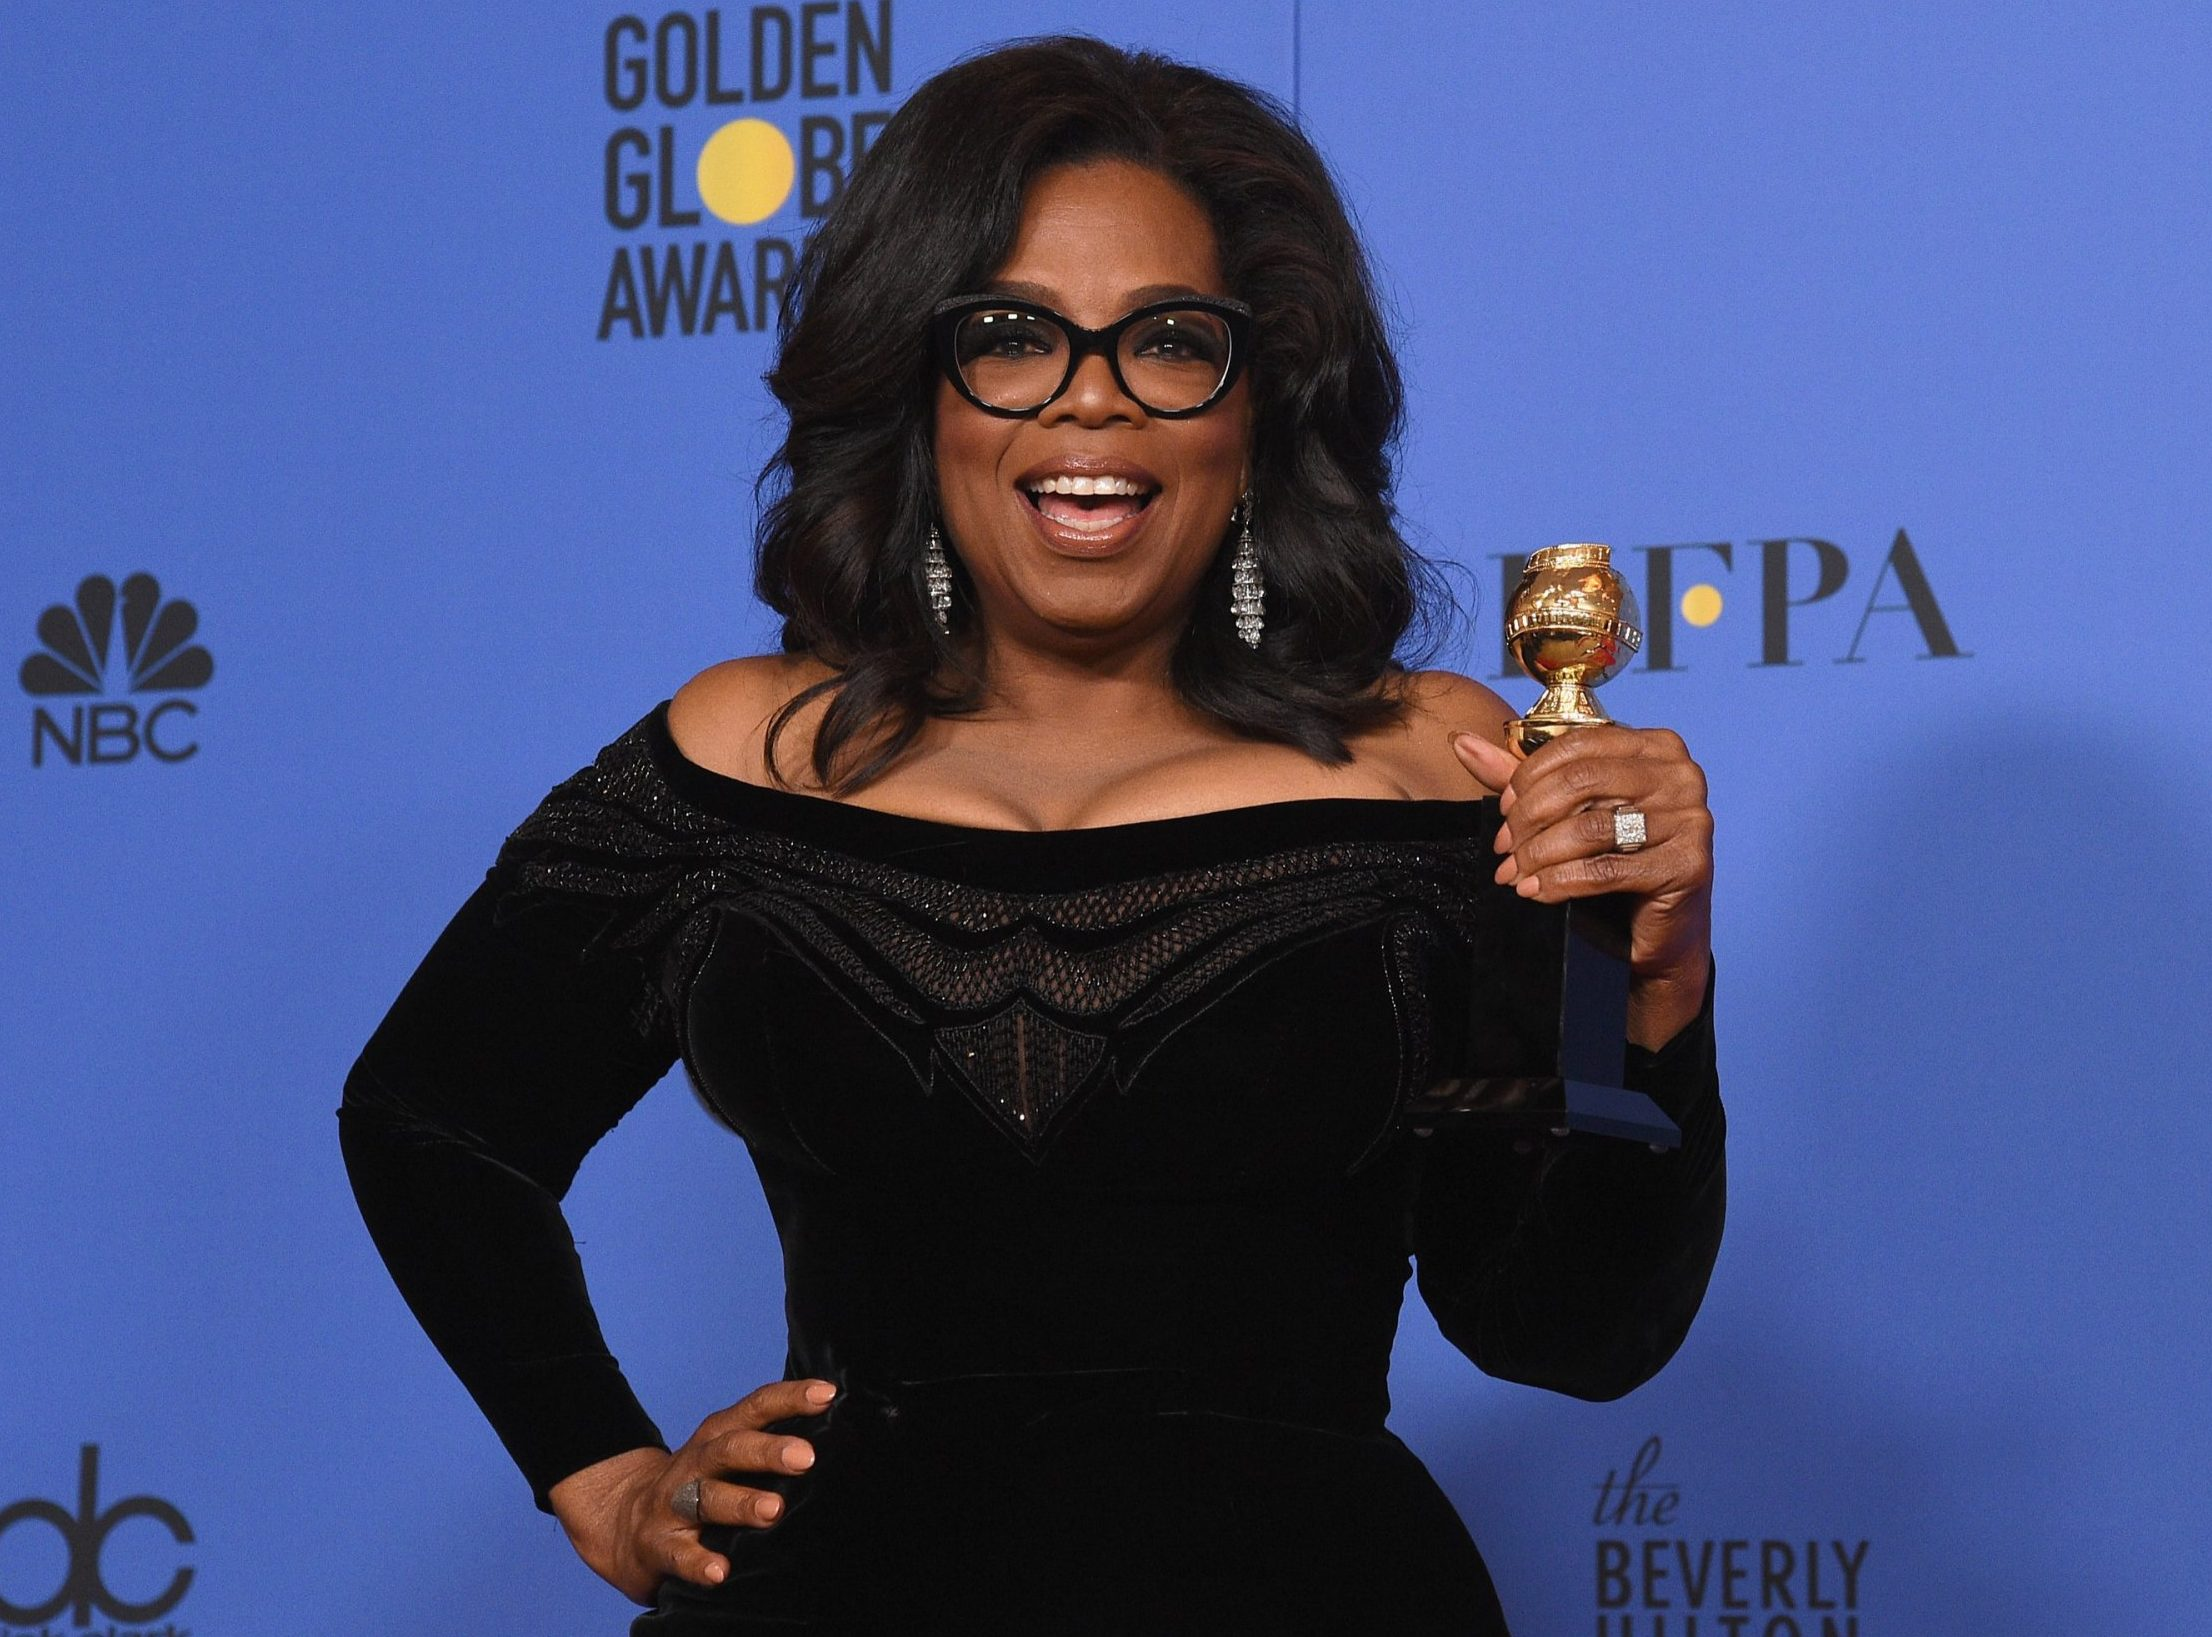 Oprah Winfrey proved Black Girl Magic was out in full force at the Golden Globes